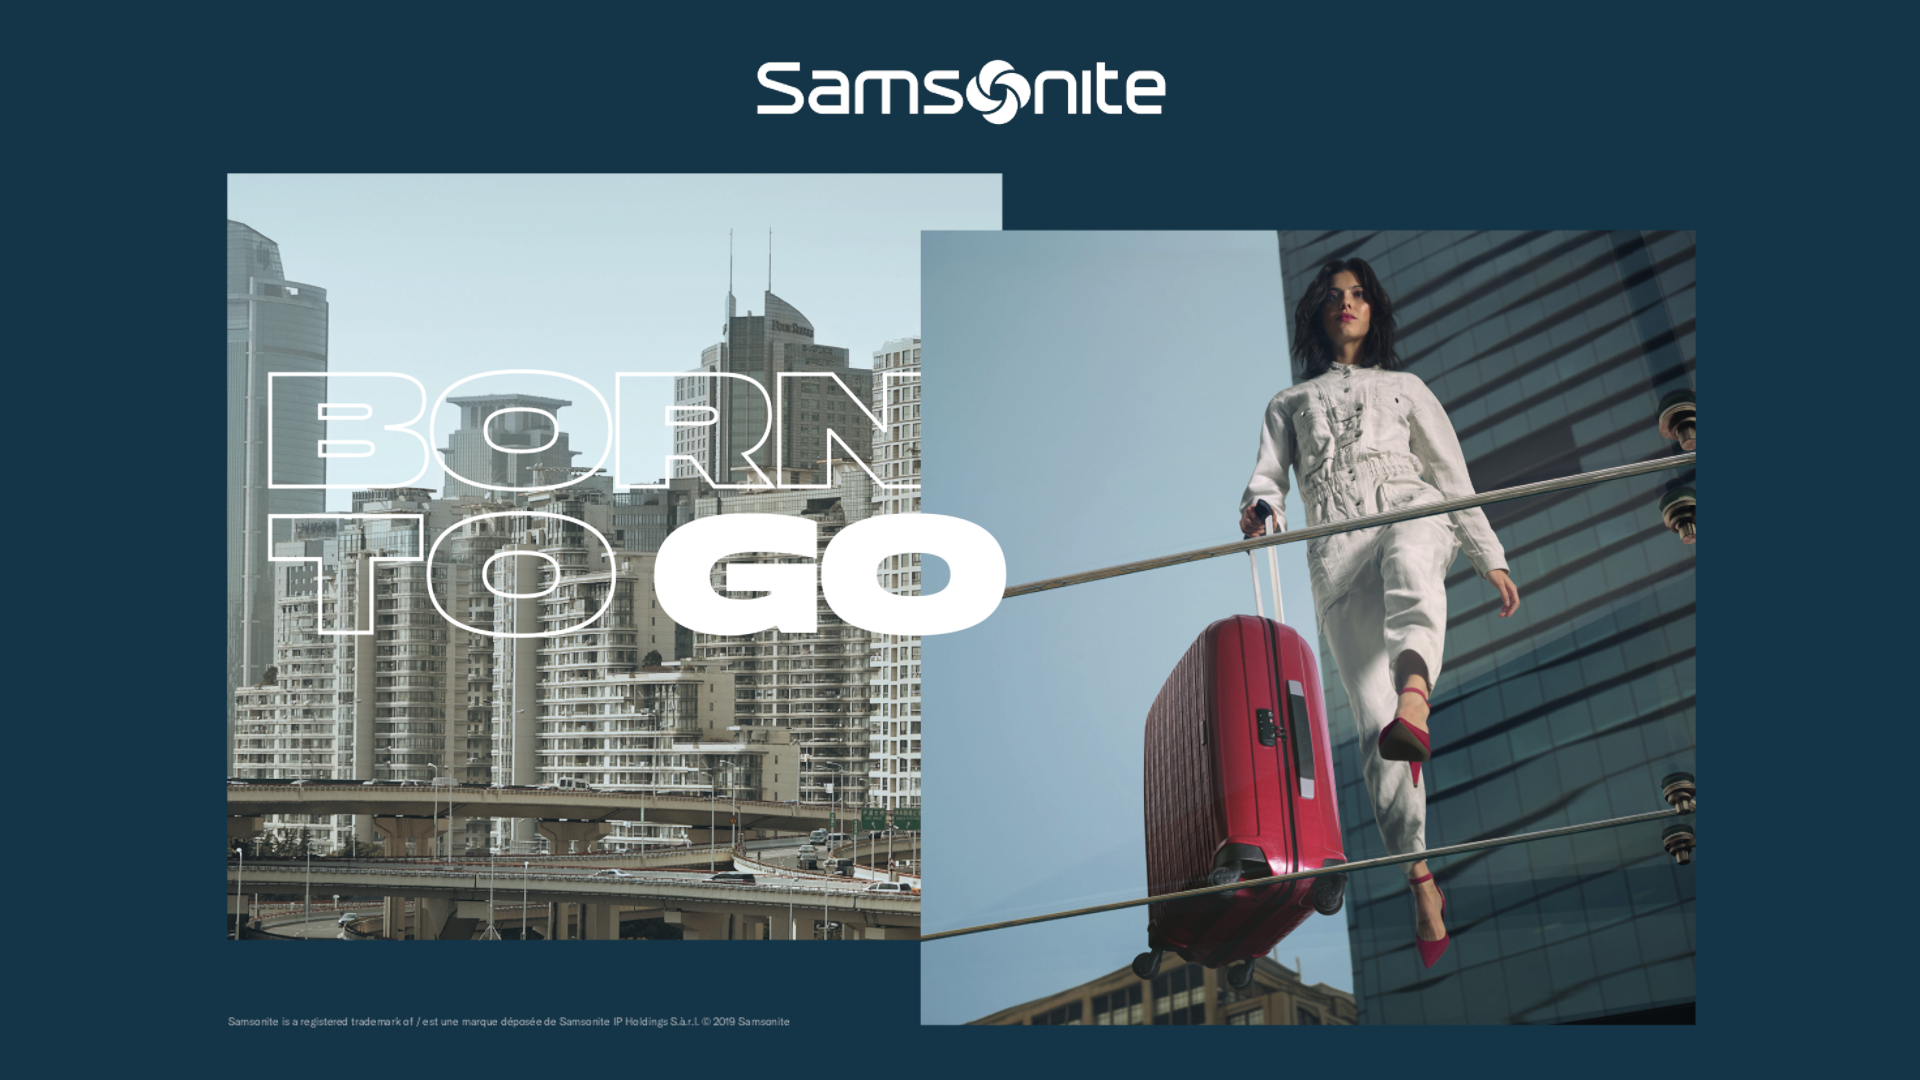 Samsonite La Vallée Village Brand Image